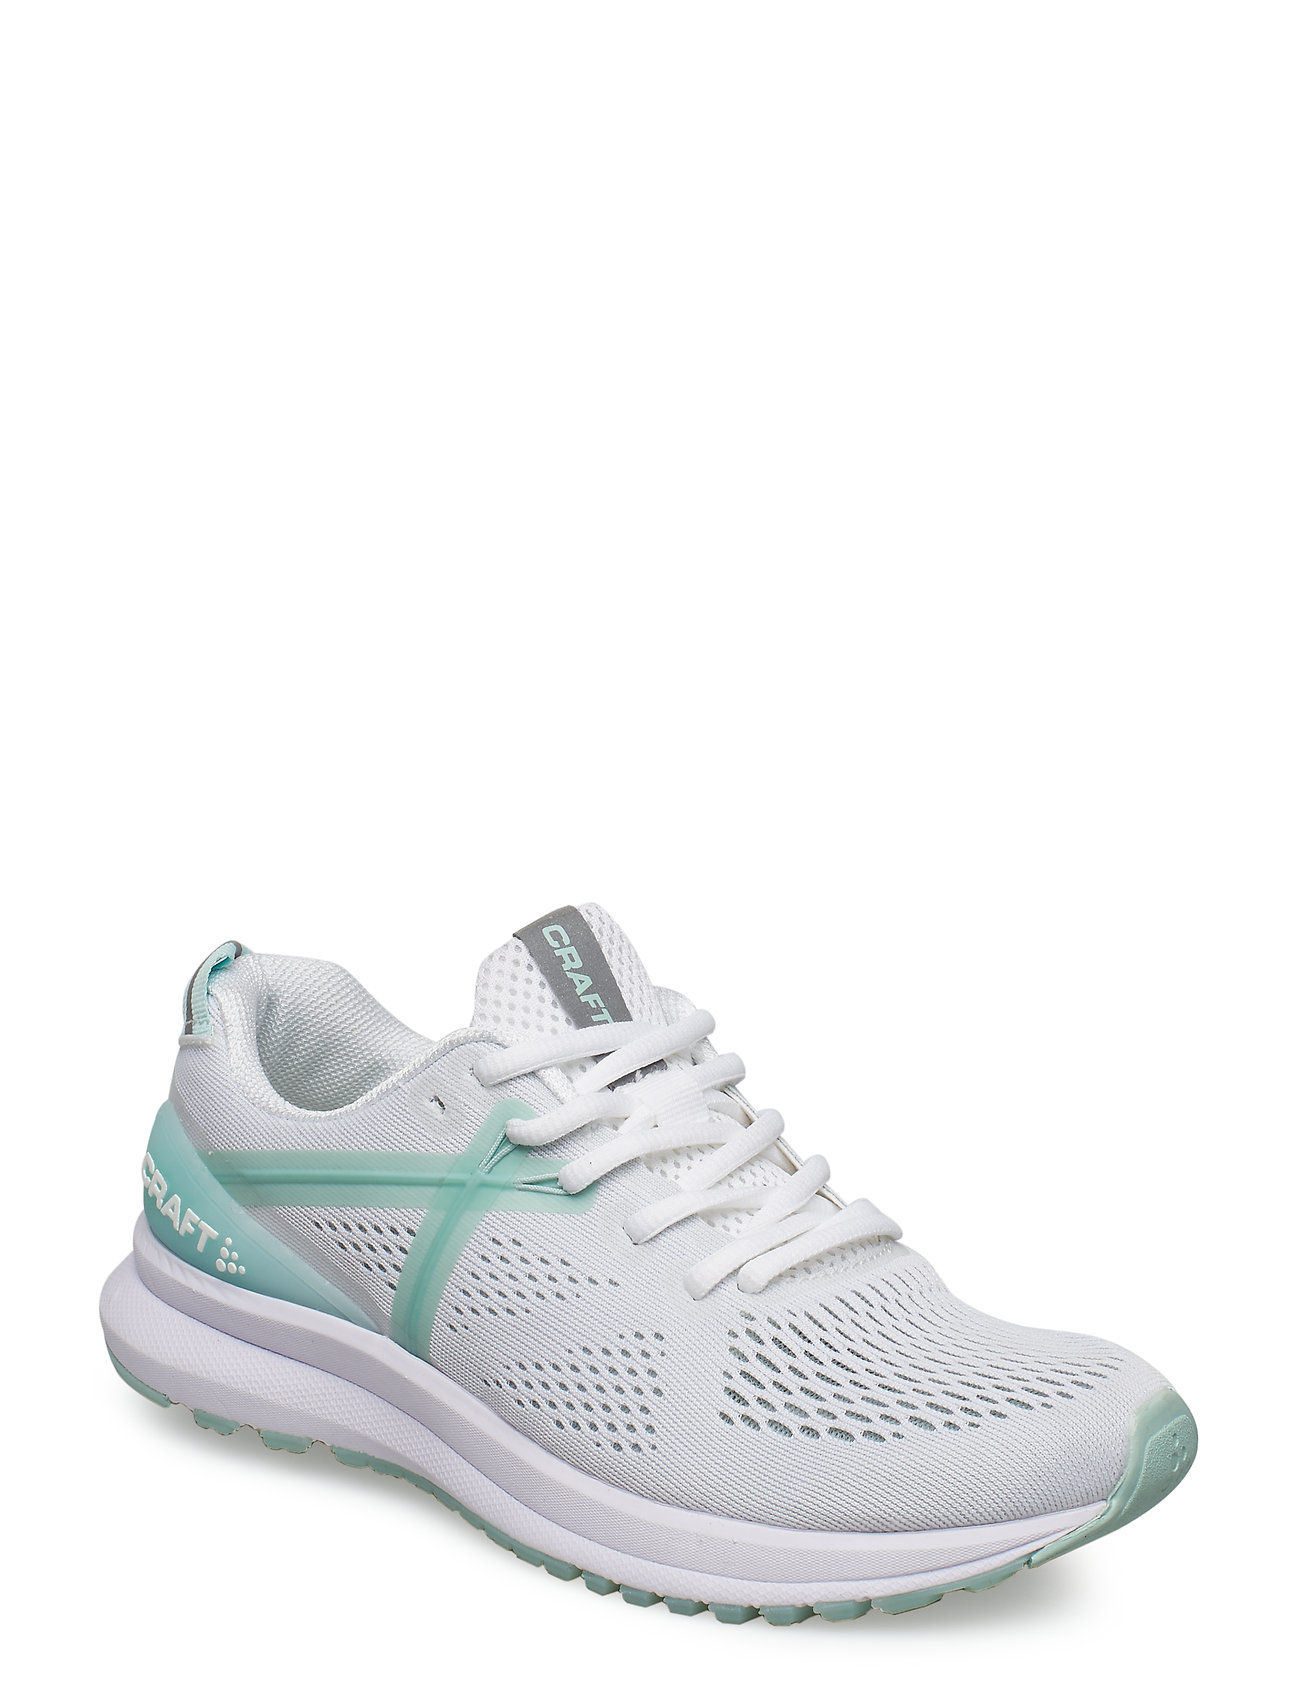 Image of Shoe X165 Engineered W Shoes Sport Shoes Running Shoes Blå Craft (3452123755)